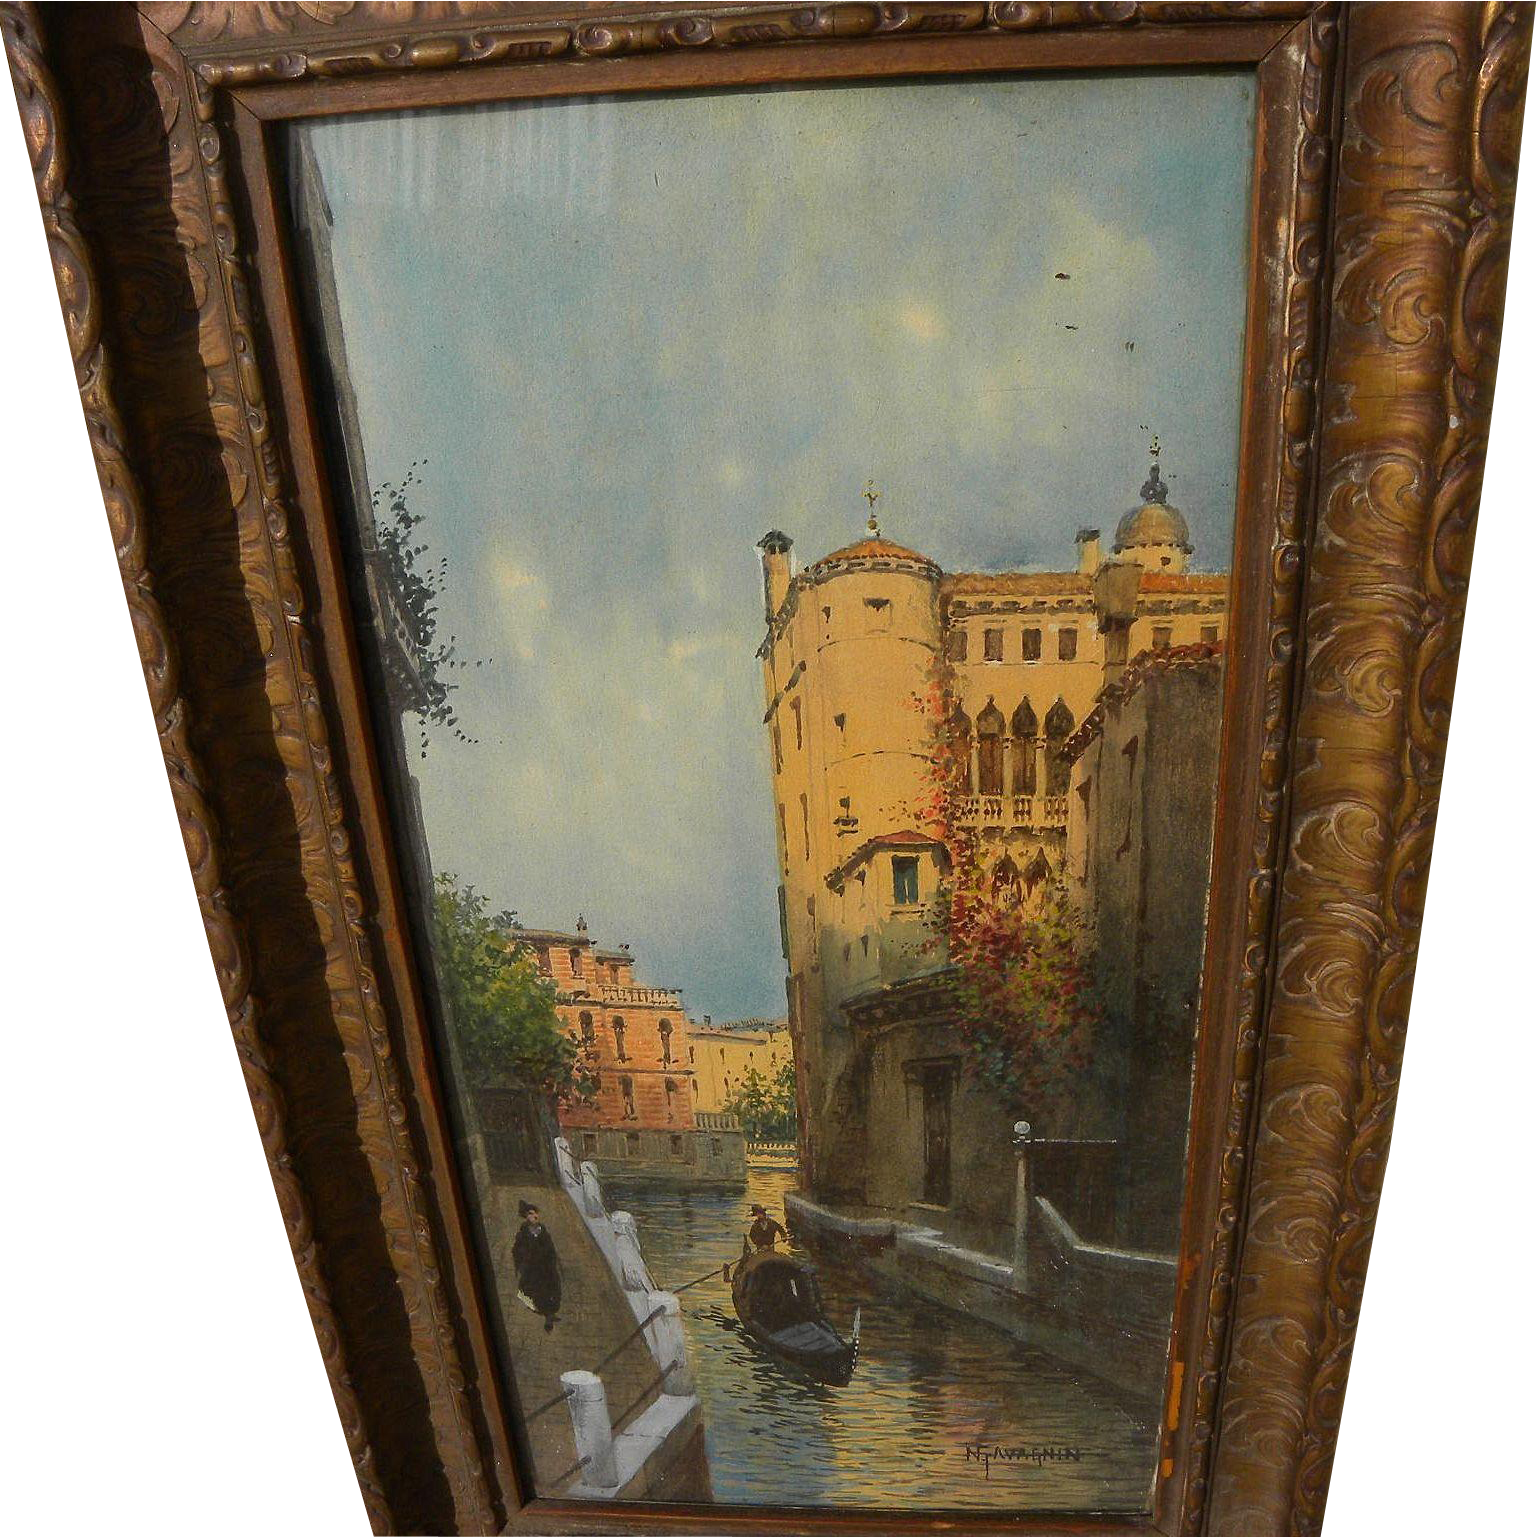 NATALE GAVAGNIN (1851-1923) Venice Italy late 19th century watercolor painting